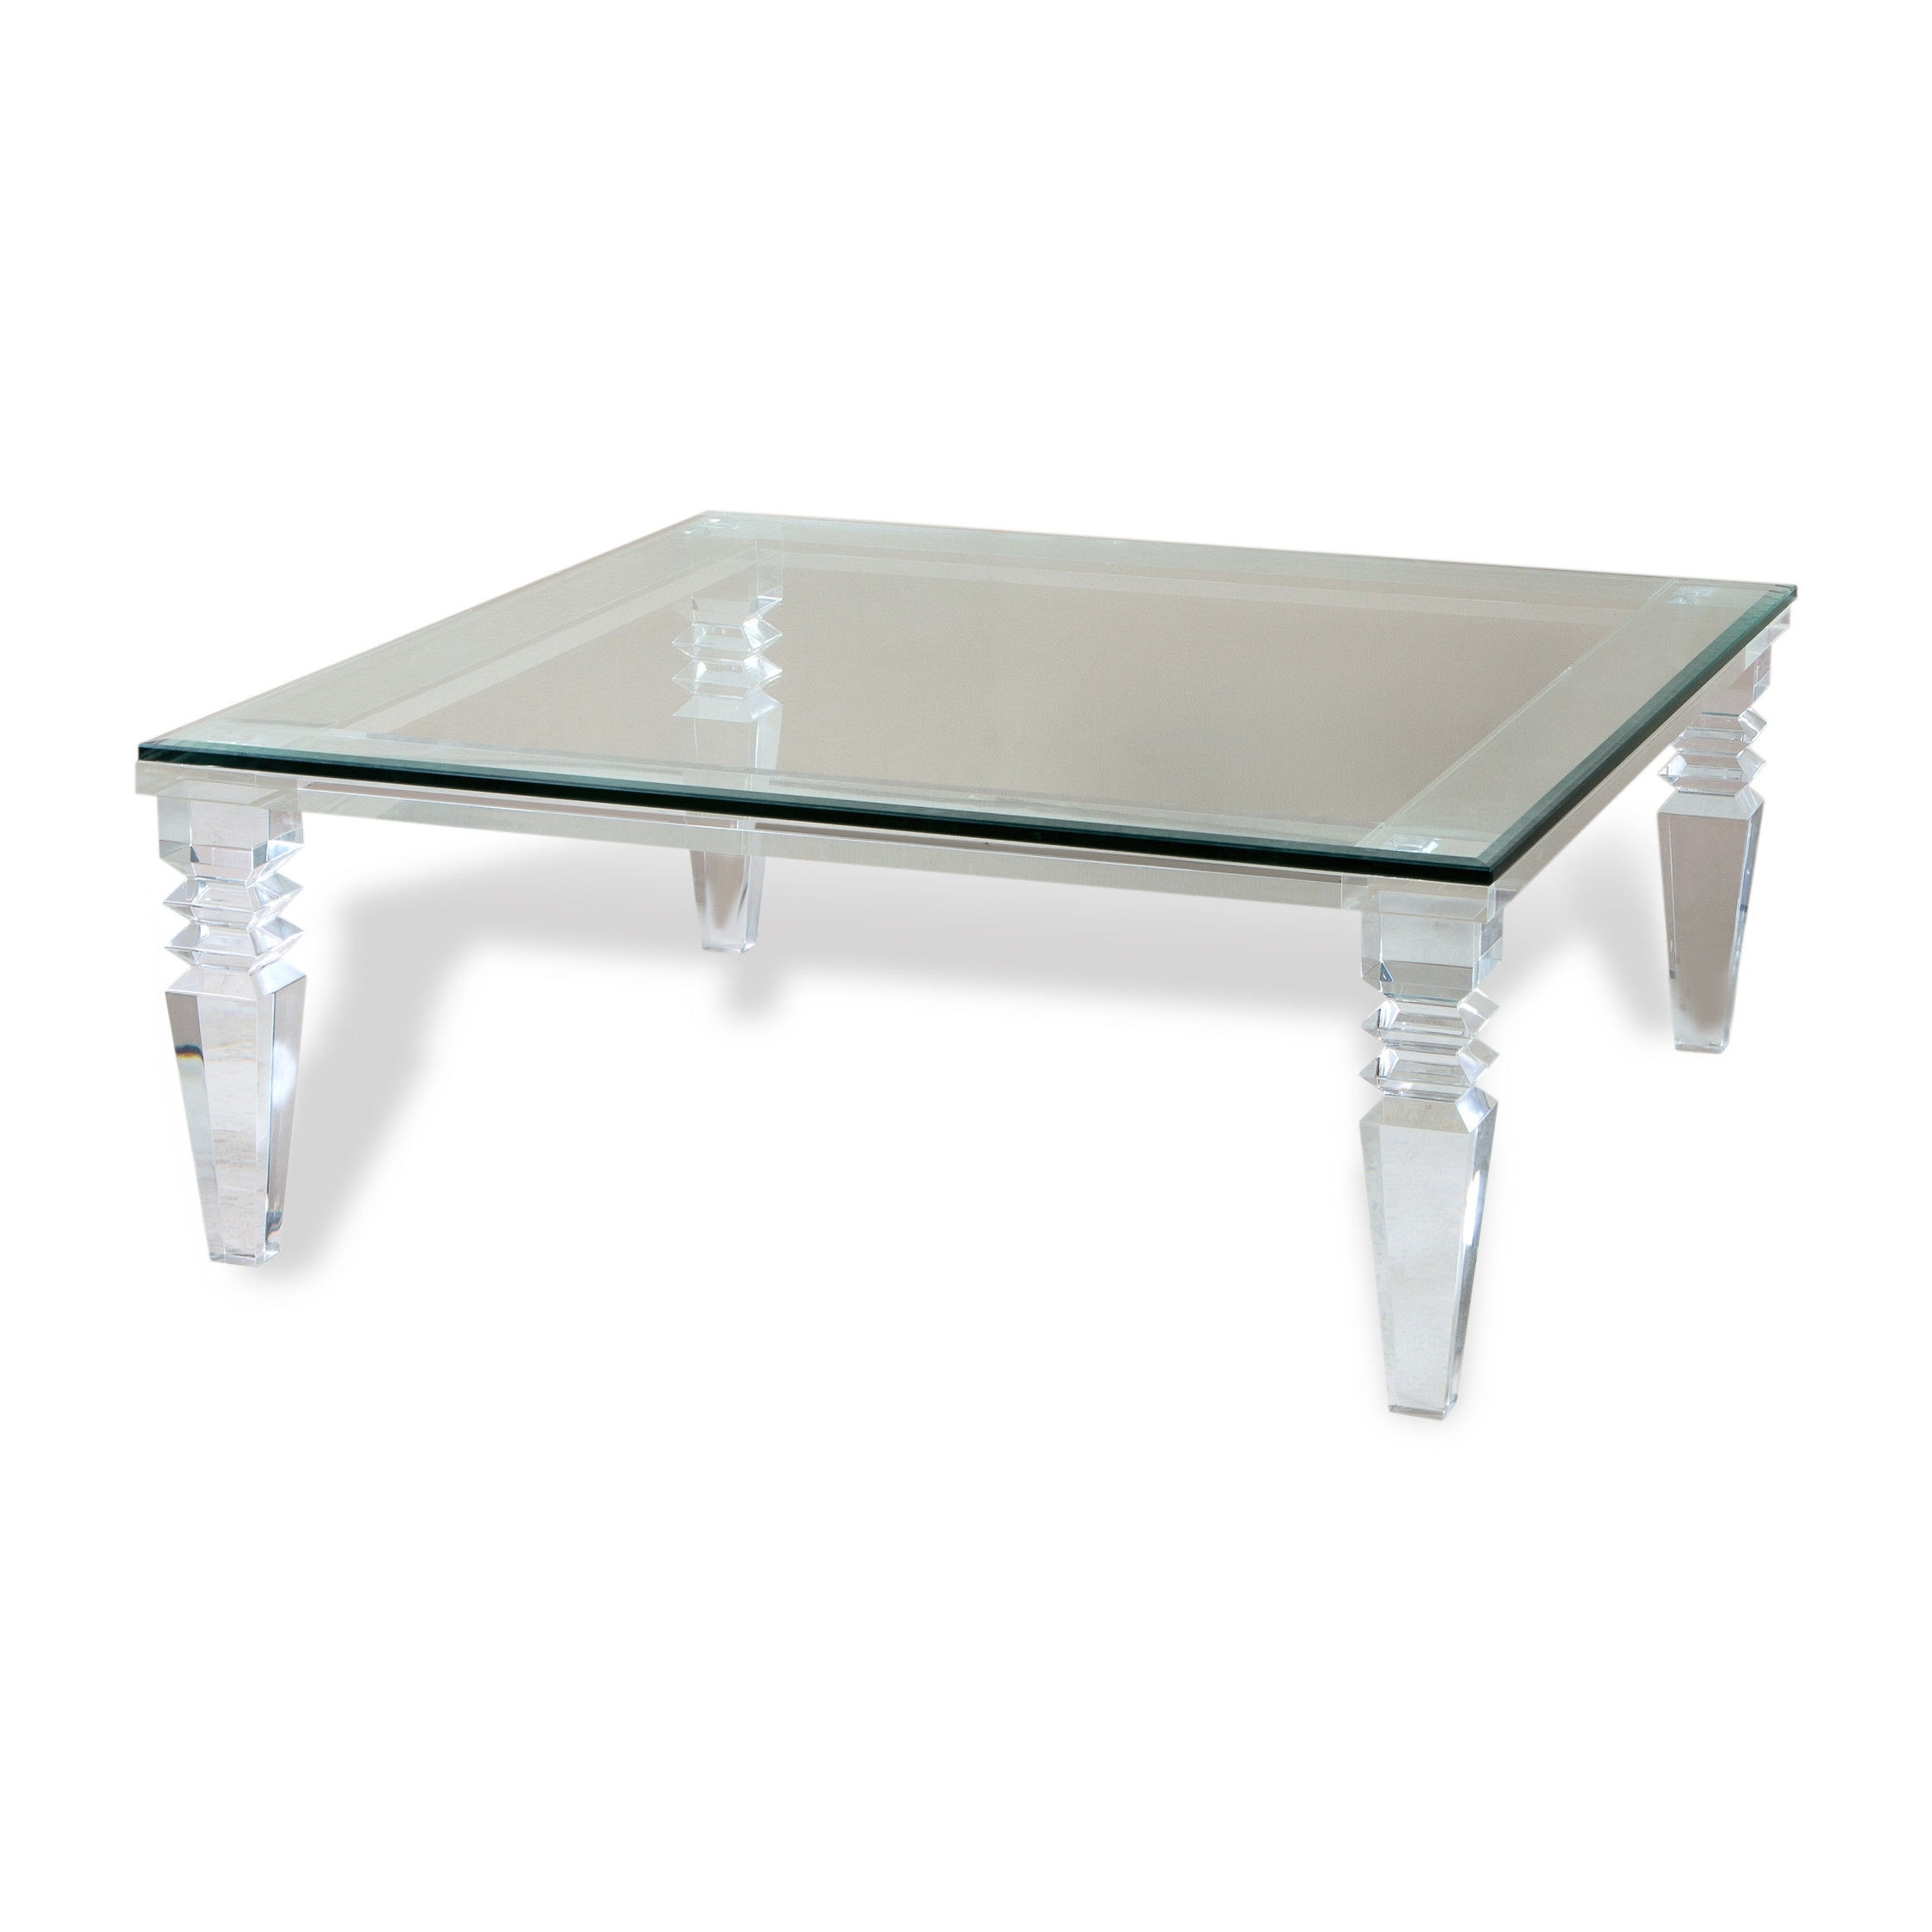 Acrylic Coffee Table For Sale Lovely Furniture Clear Glass Coffee With Regard To Most Recently Released Peekaboo Acrylic Tall Coffee Tables (View 7 of 20)